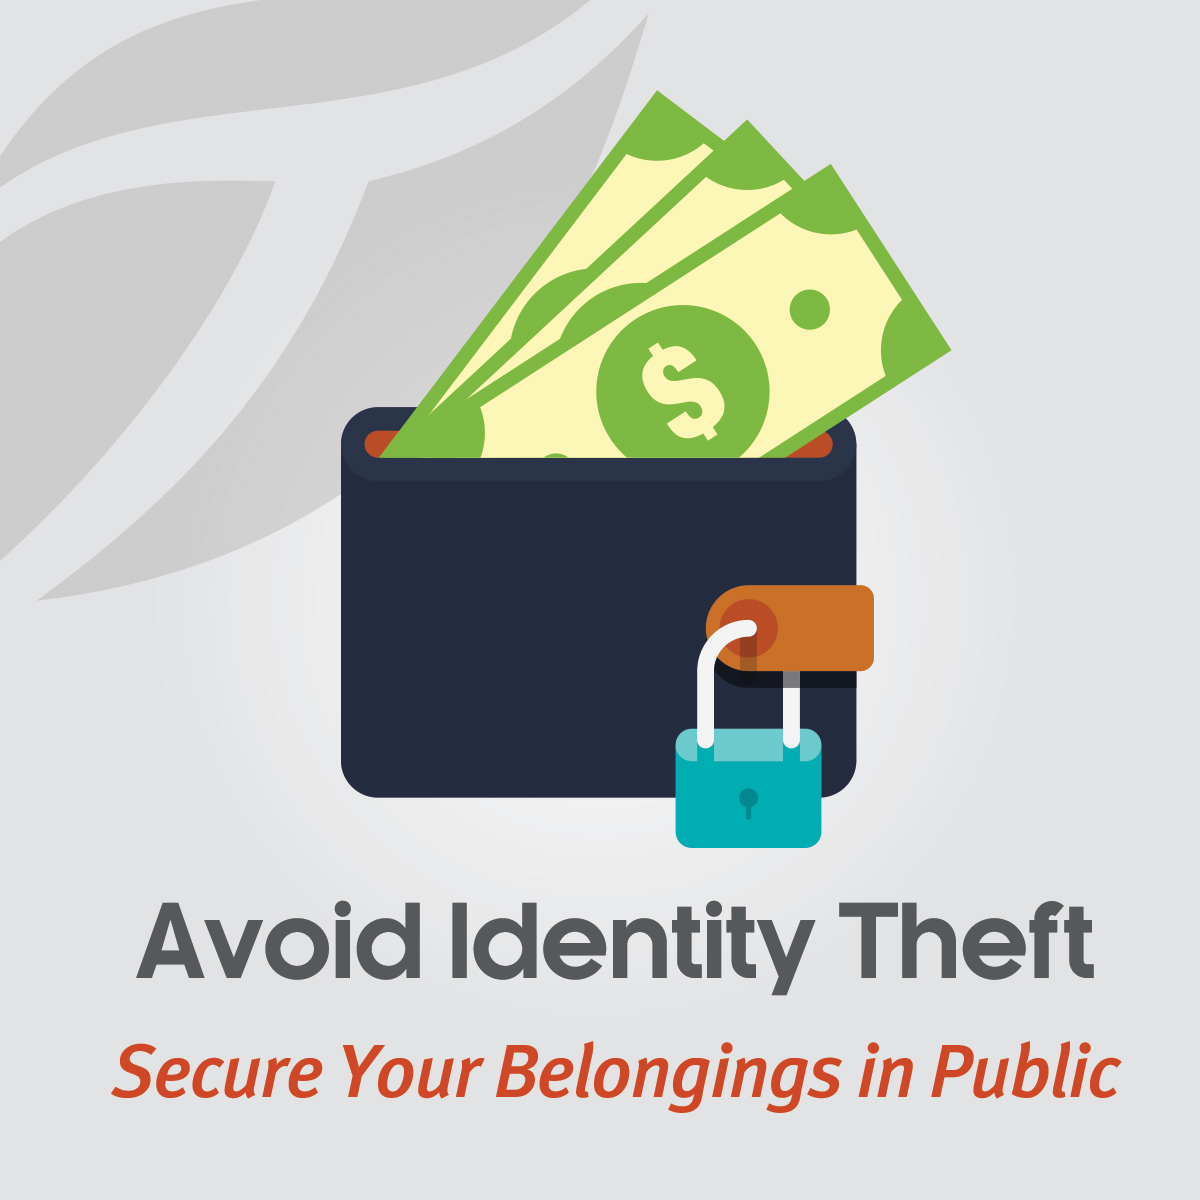 Secure Your Belongings in Public